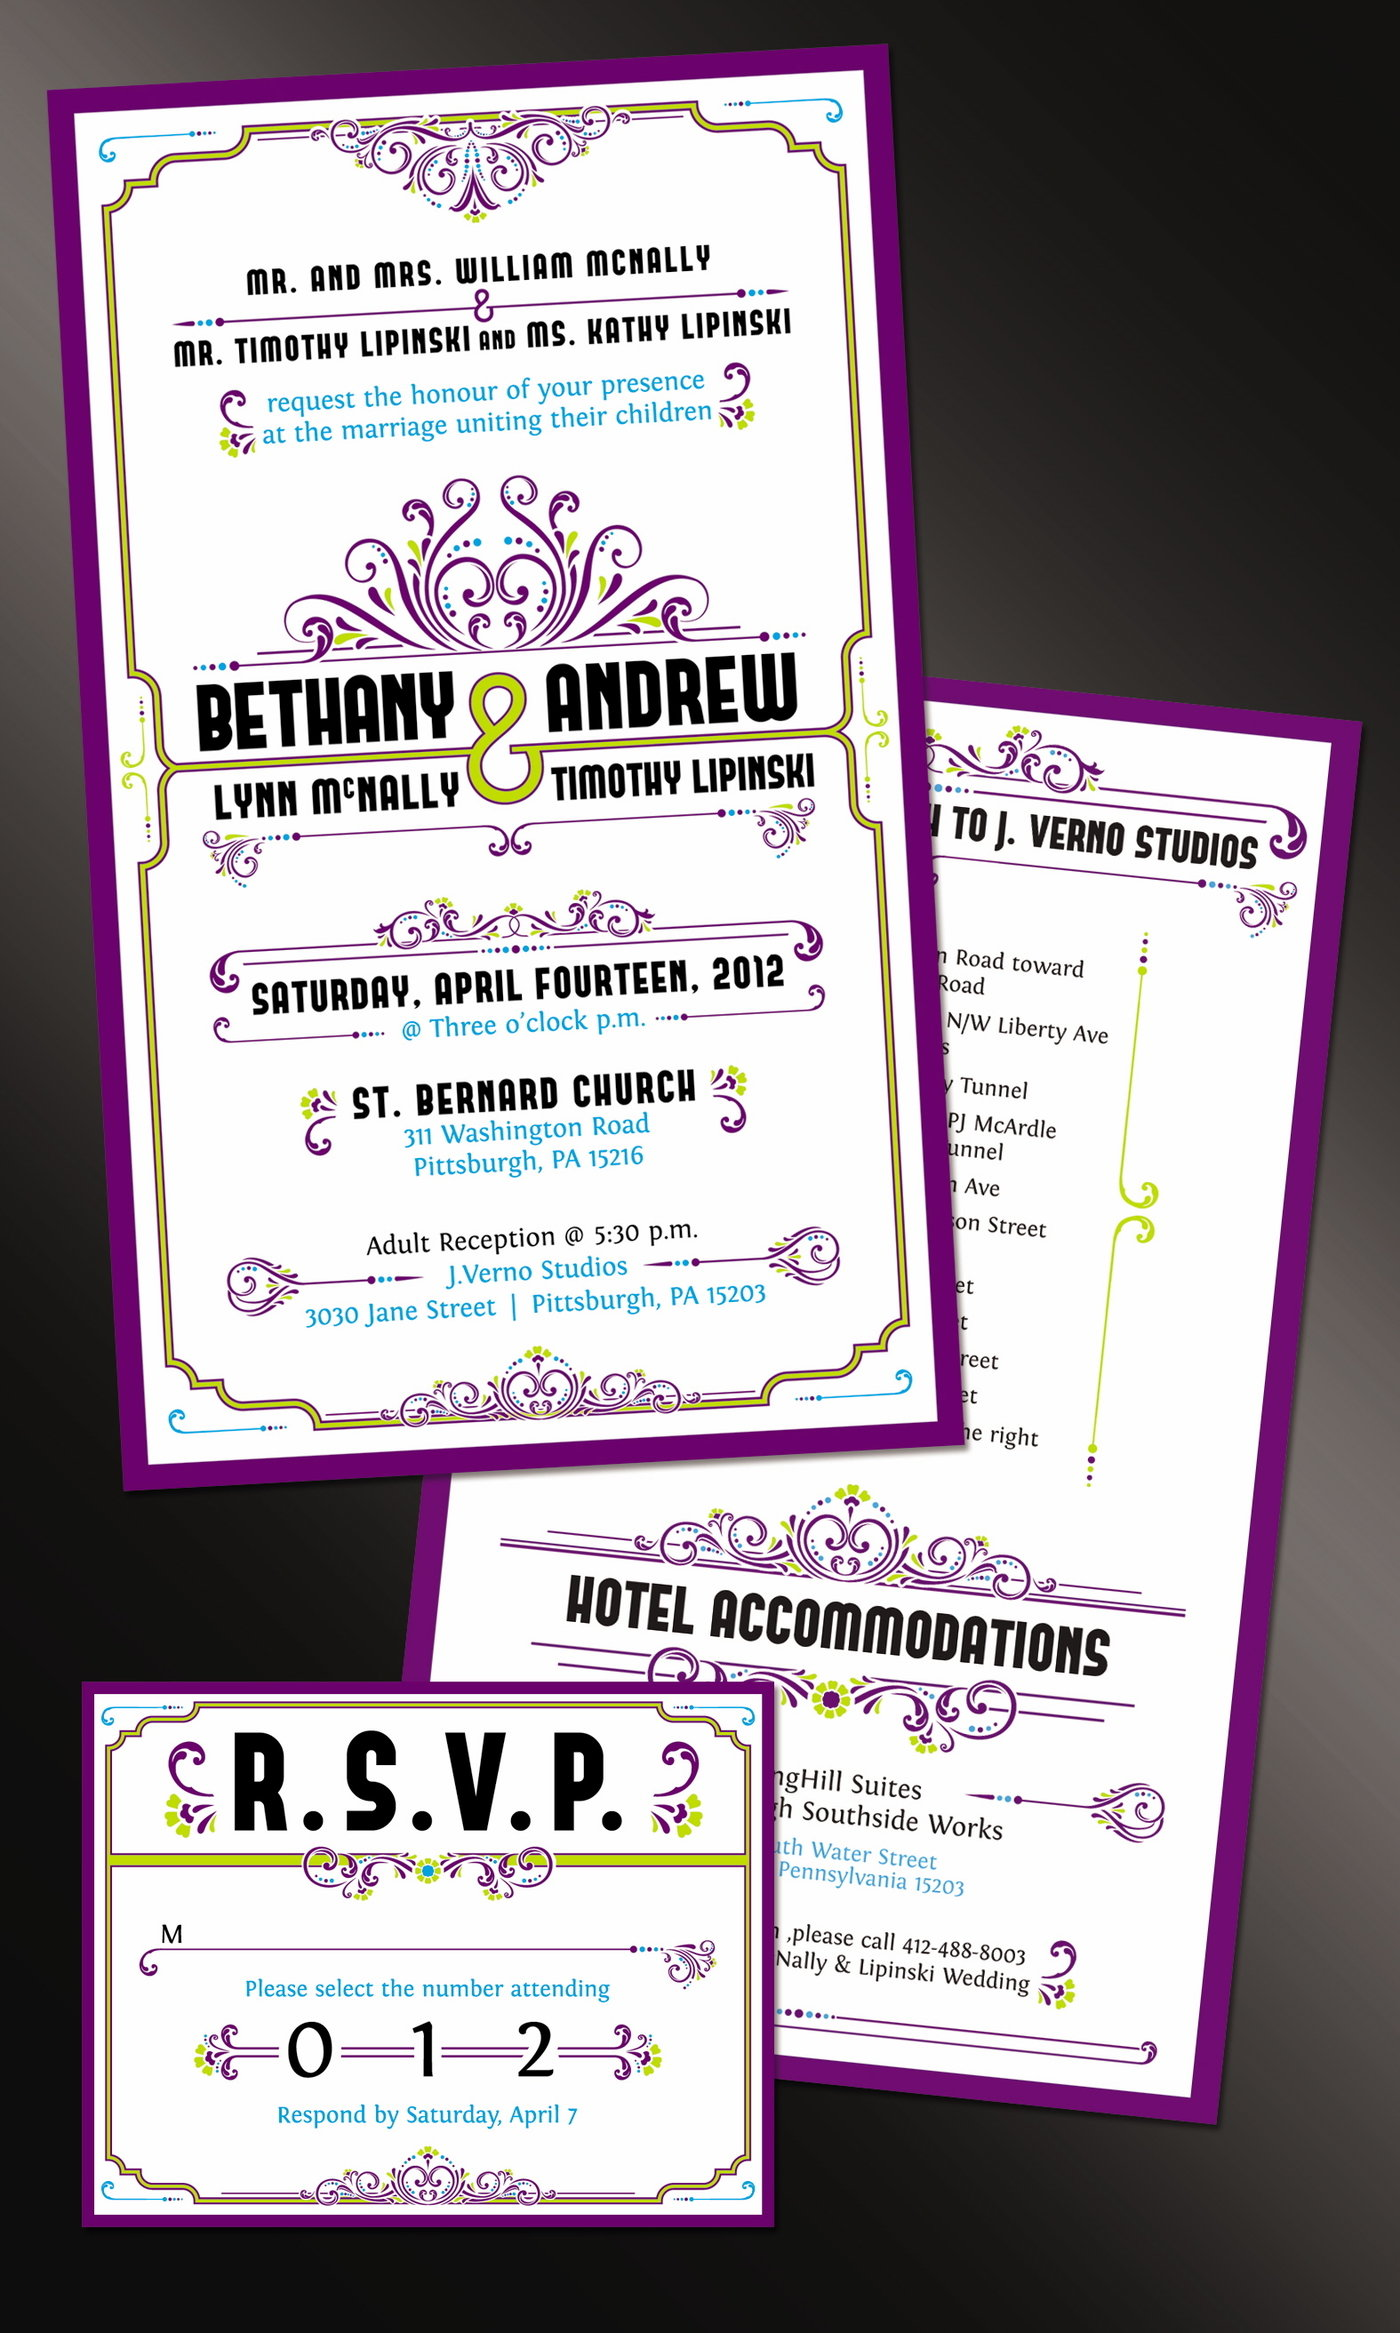 Advertisements by scott nicklos at coroflot wedding invites and rsvp a peacock themed wedding with matching color scheme and a mardi gras aspect monicamarmolfo Choice Image